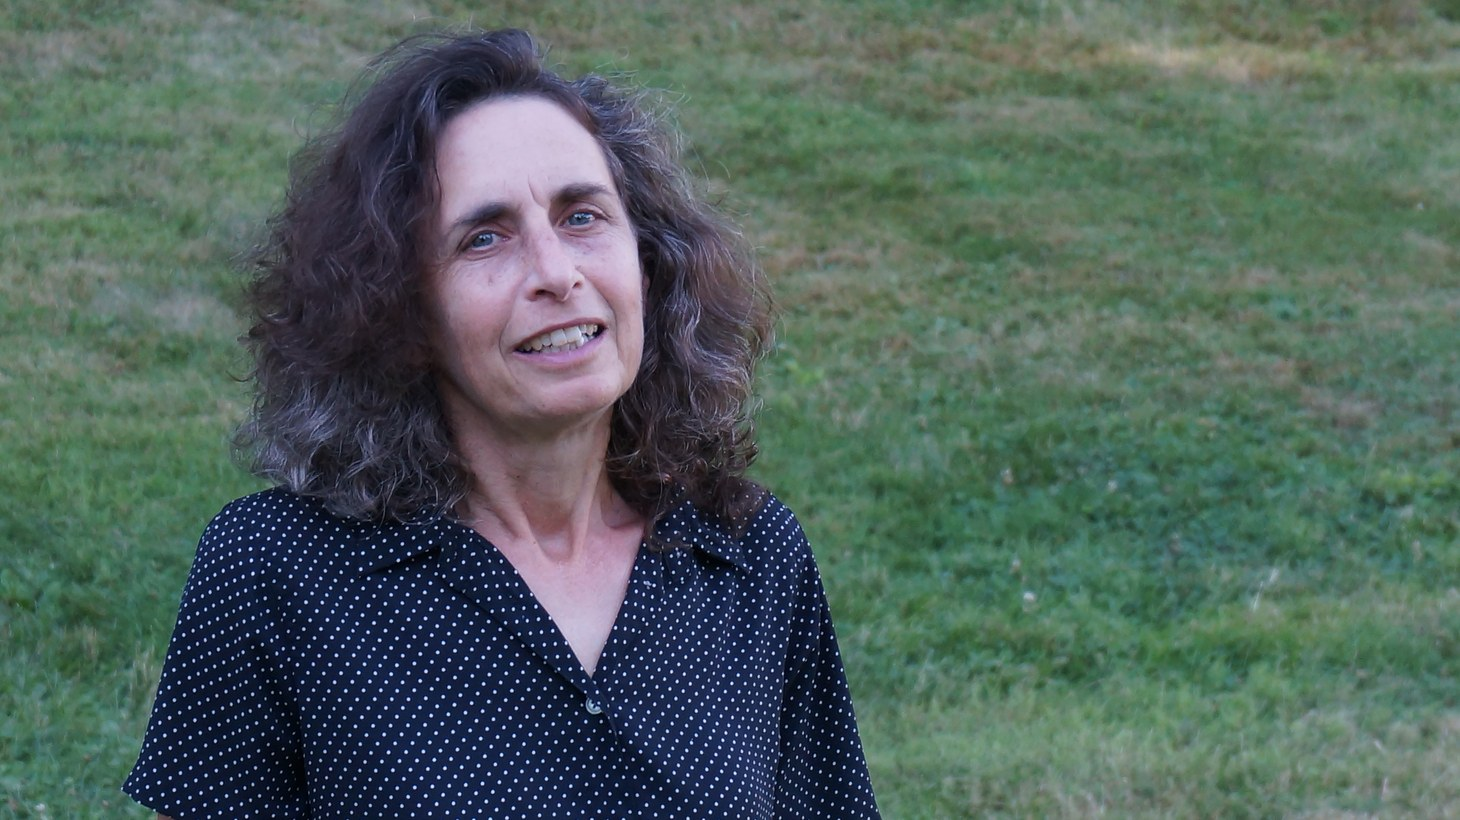 """Elizabeth Kolbert's new book, """"Under a White Sky,"""" is about how humans must continue intervening in nature to try to mitigate climate change."""